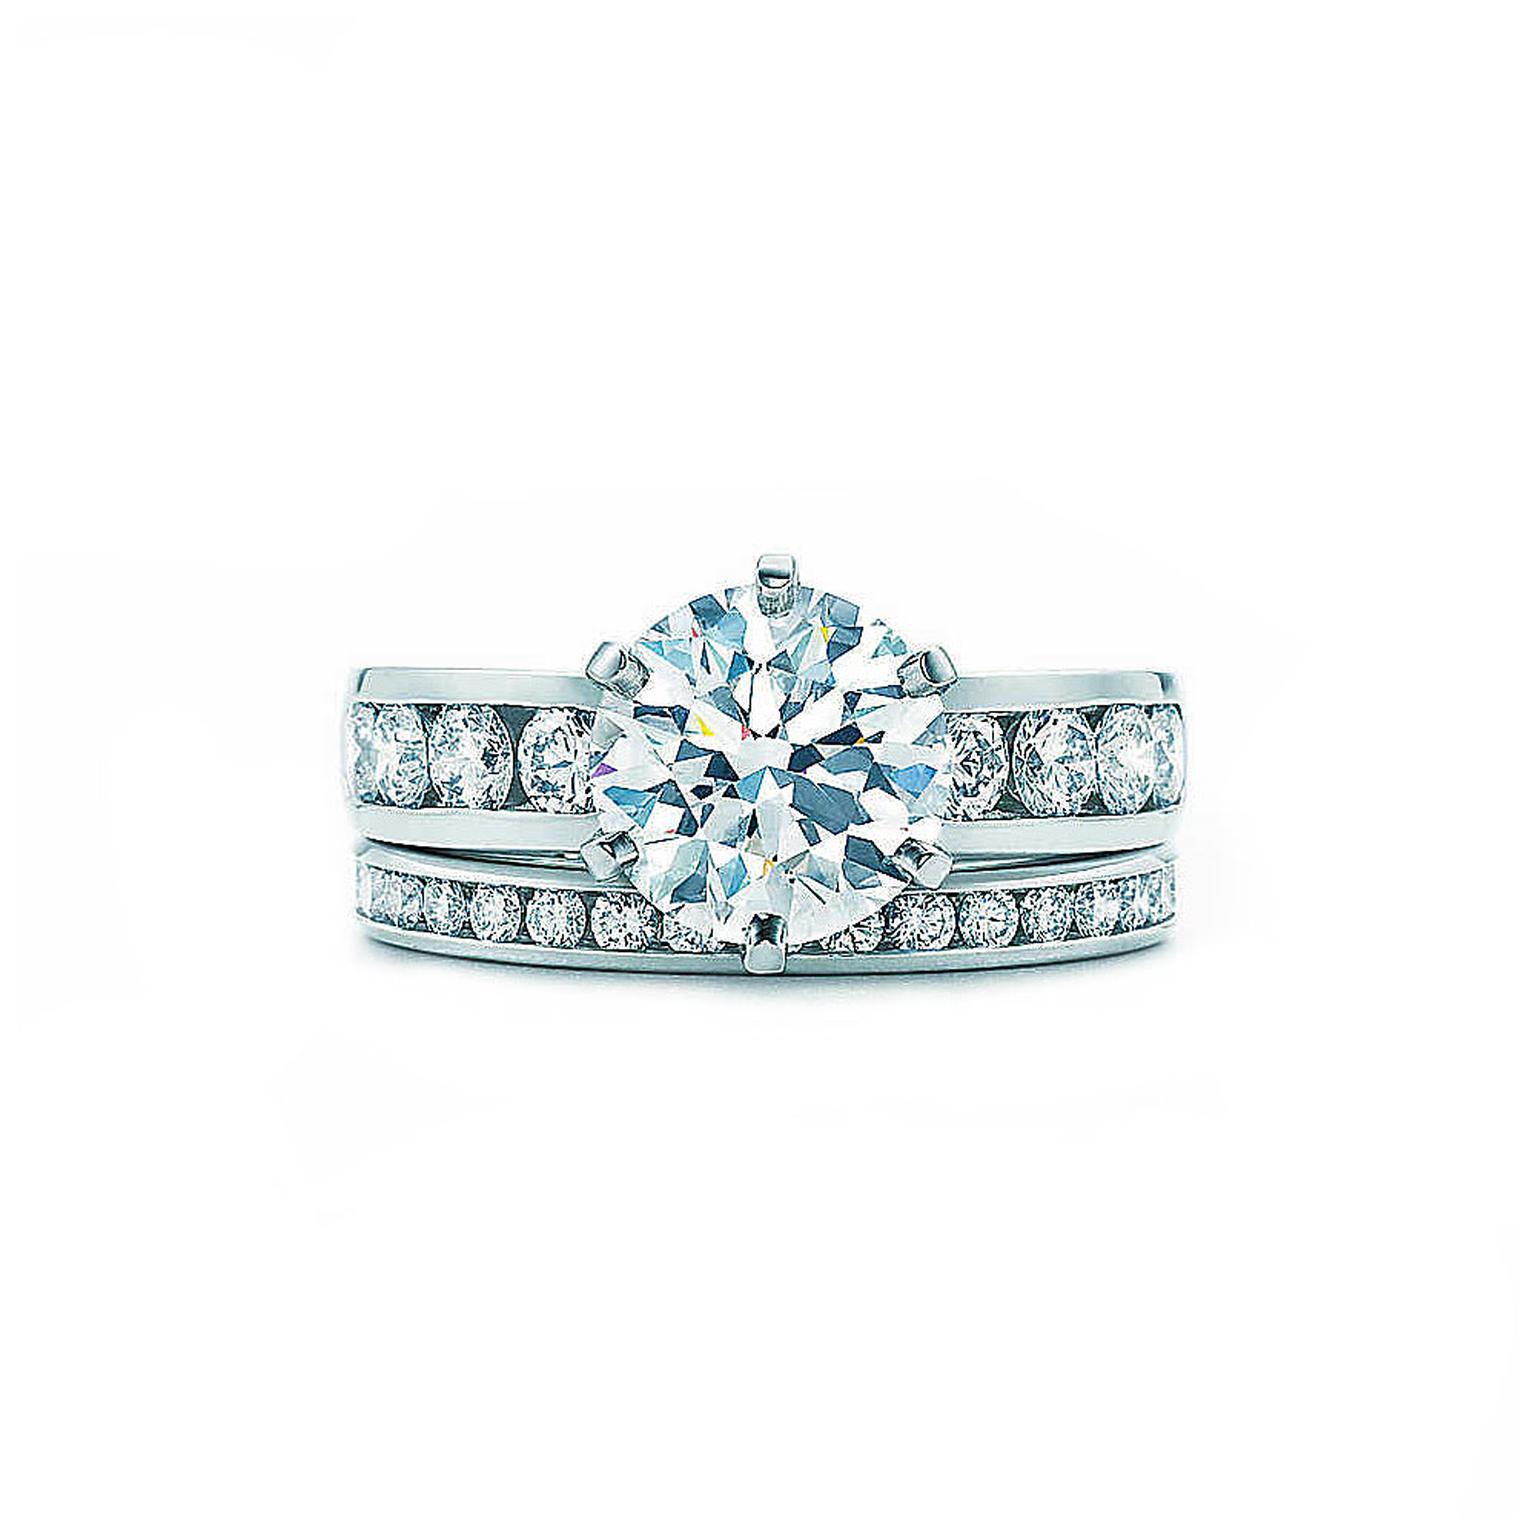 Channel-set Tiffany engagement ring and wedding band